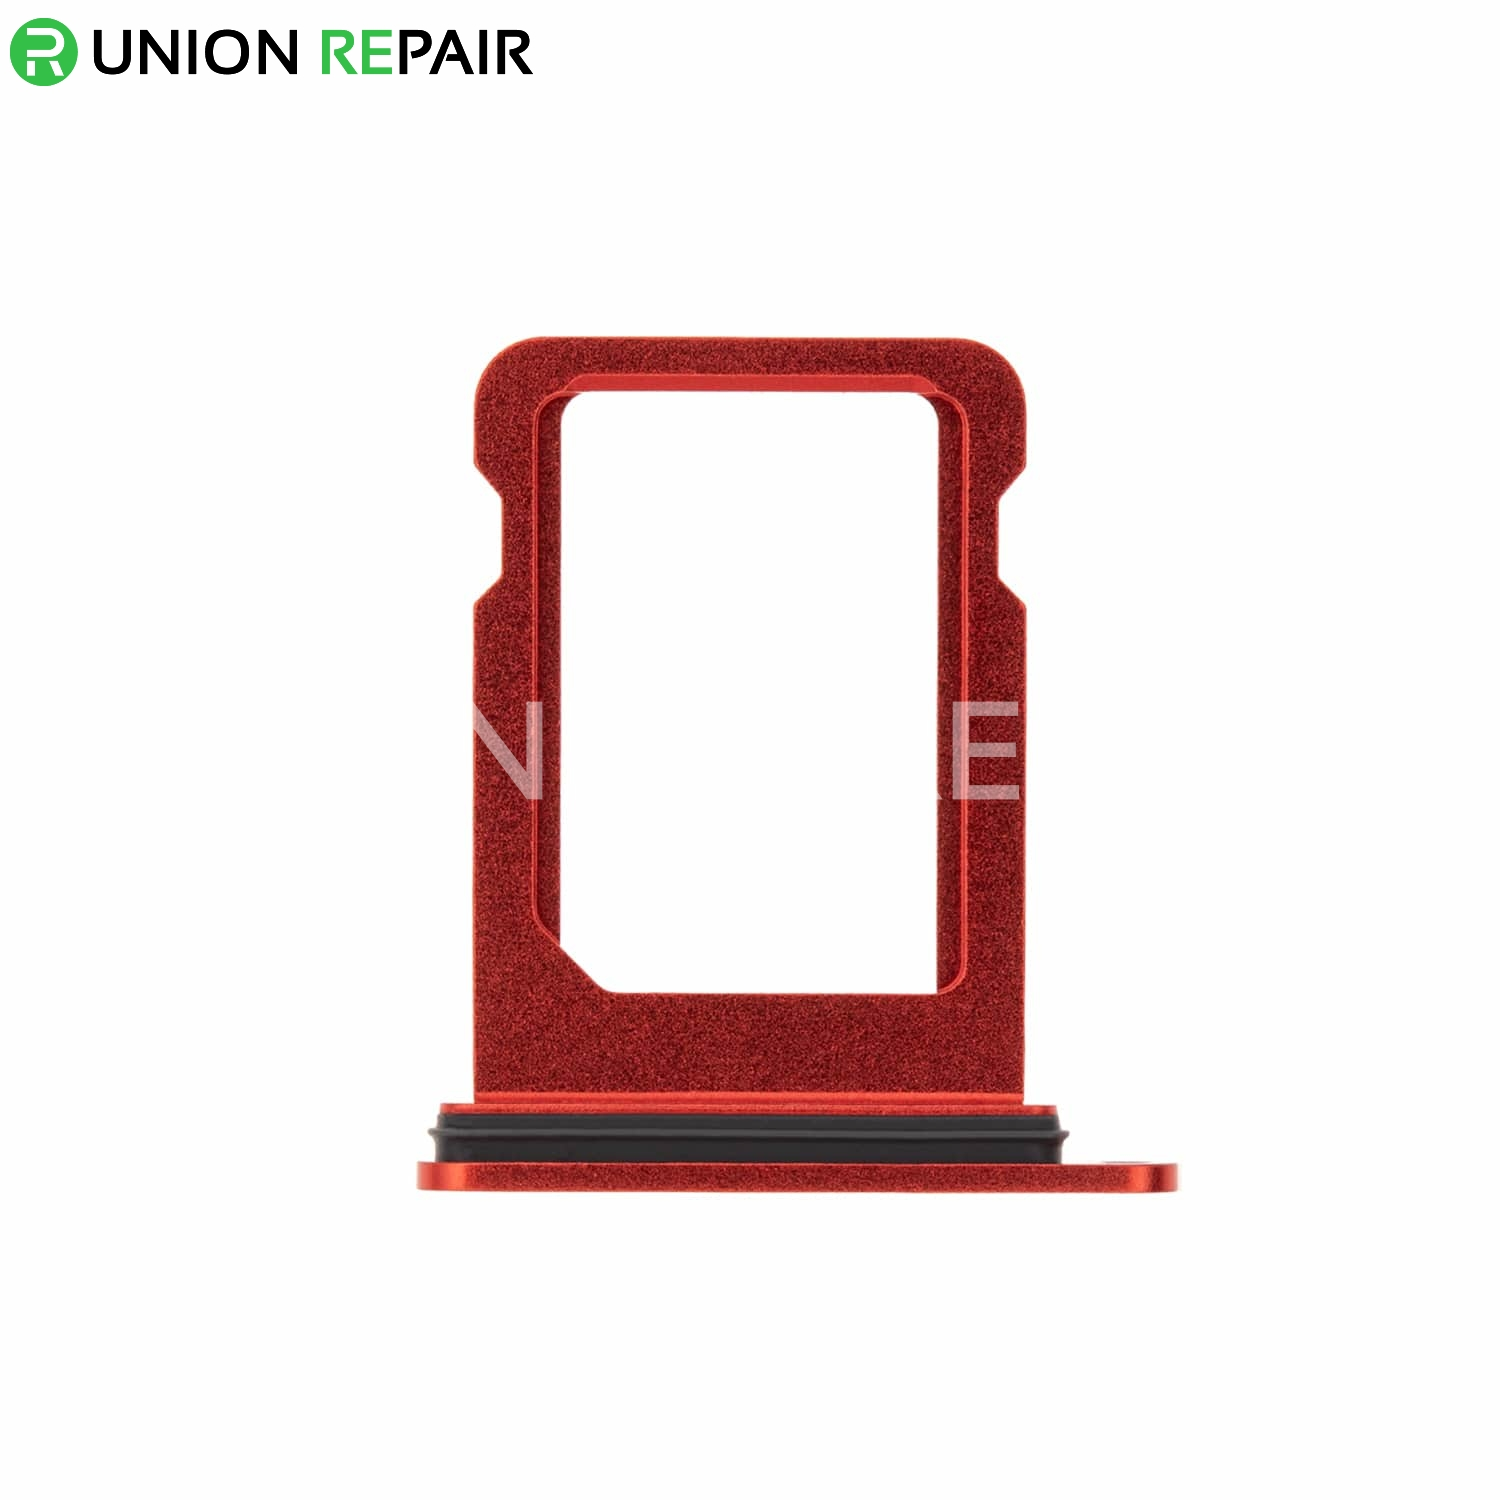 Replacement for iPhone 12 Mini SIM Card Tray - Red